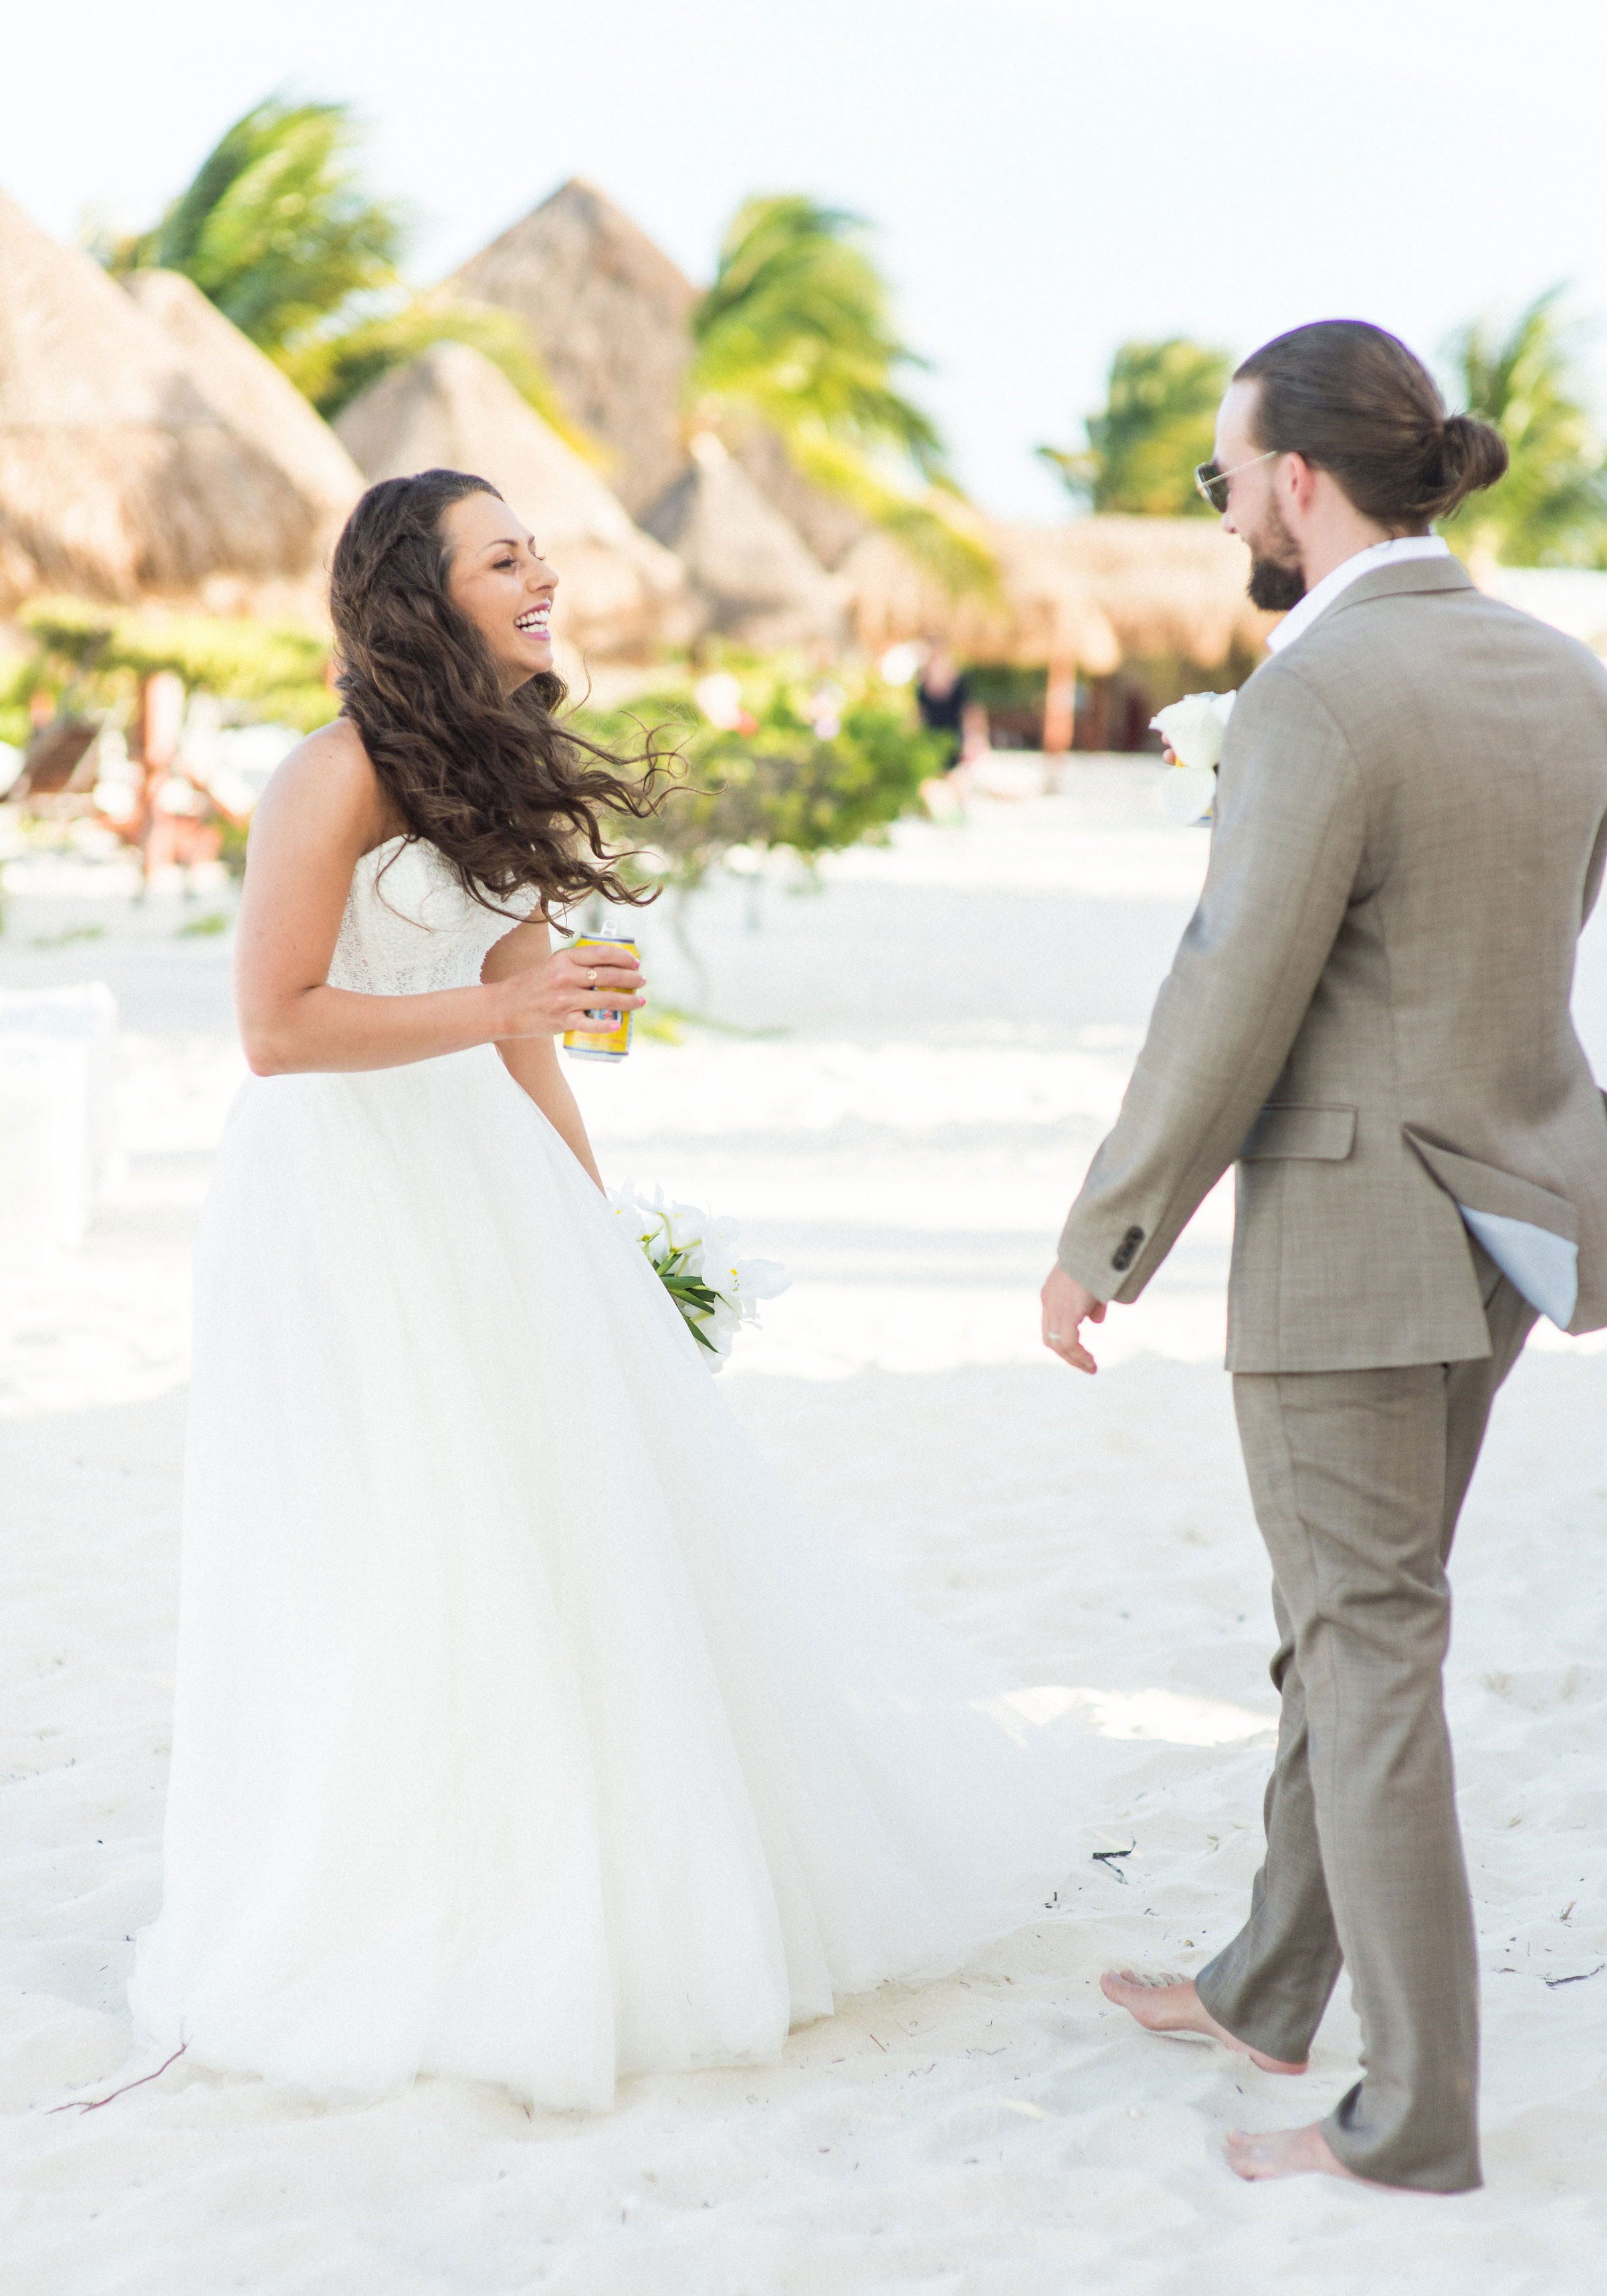 Bride & Groom at their cocktail hour on the beach.  Destination wedding in Mexico.